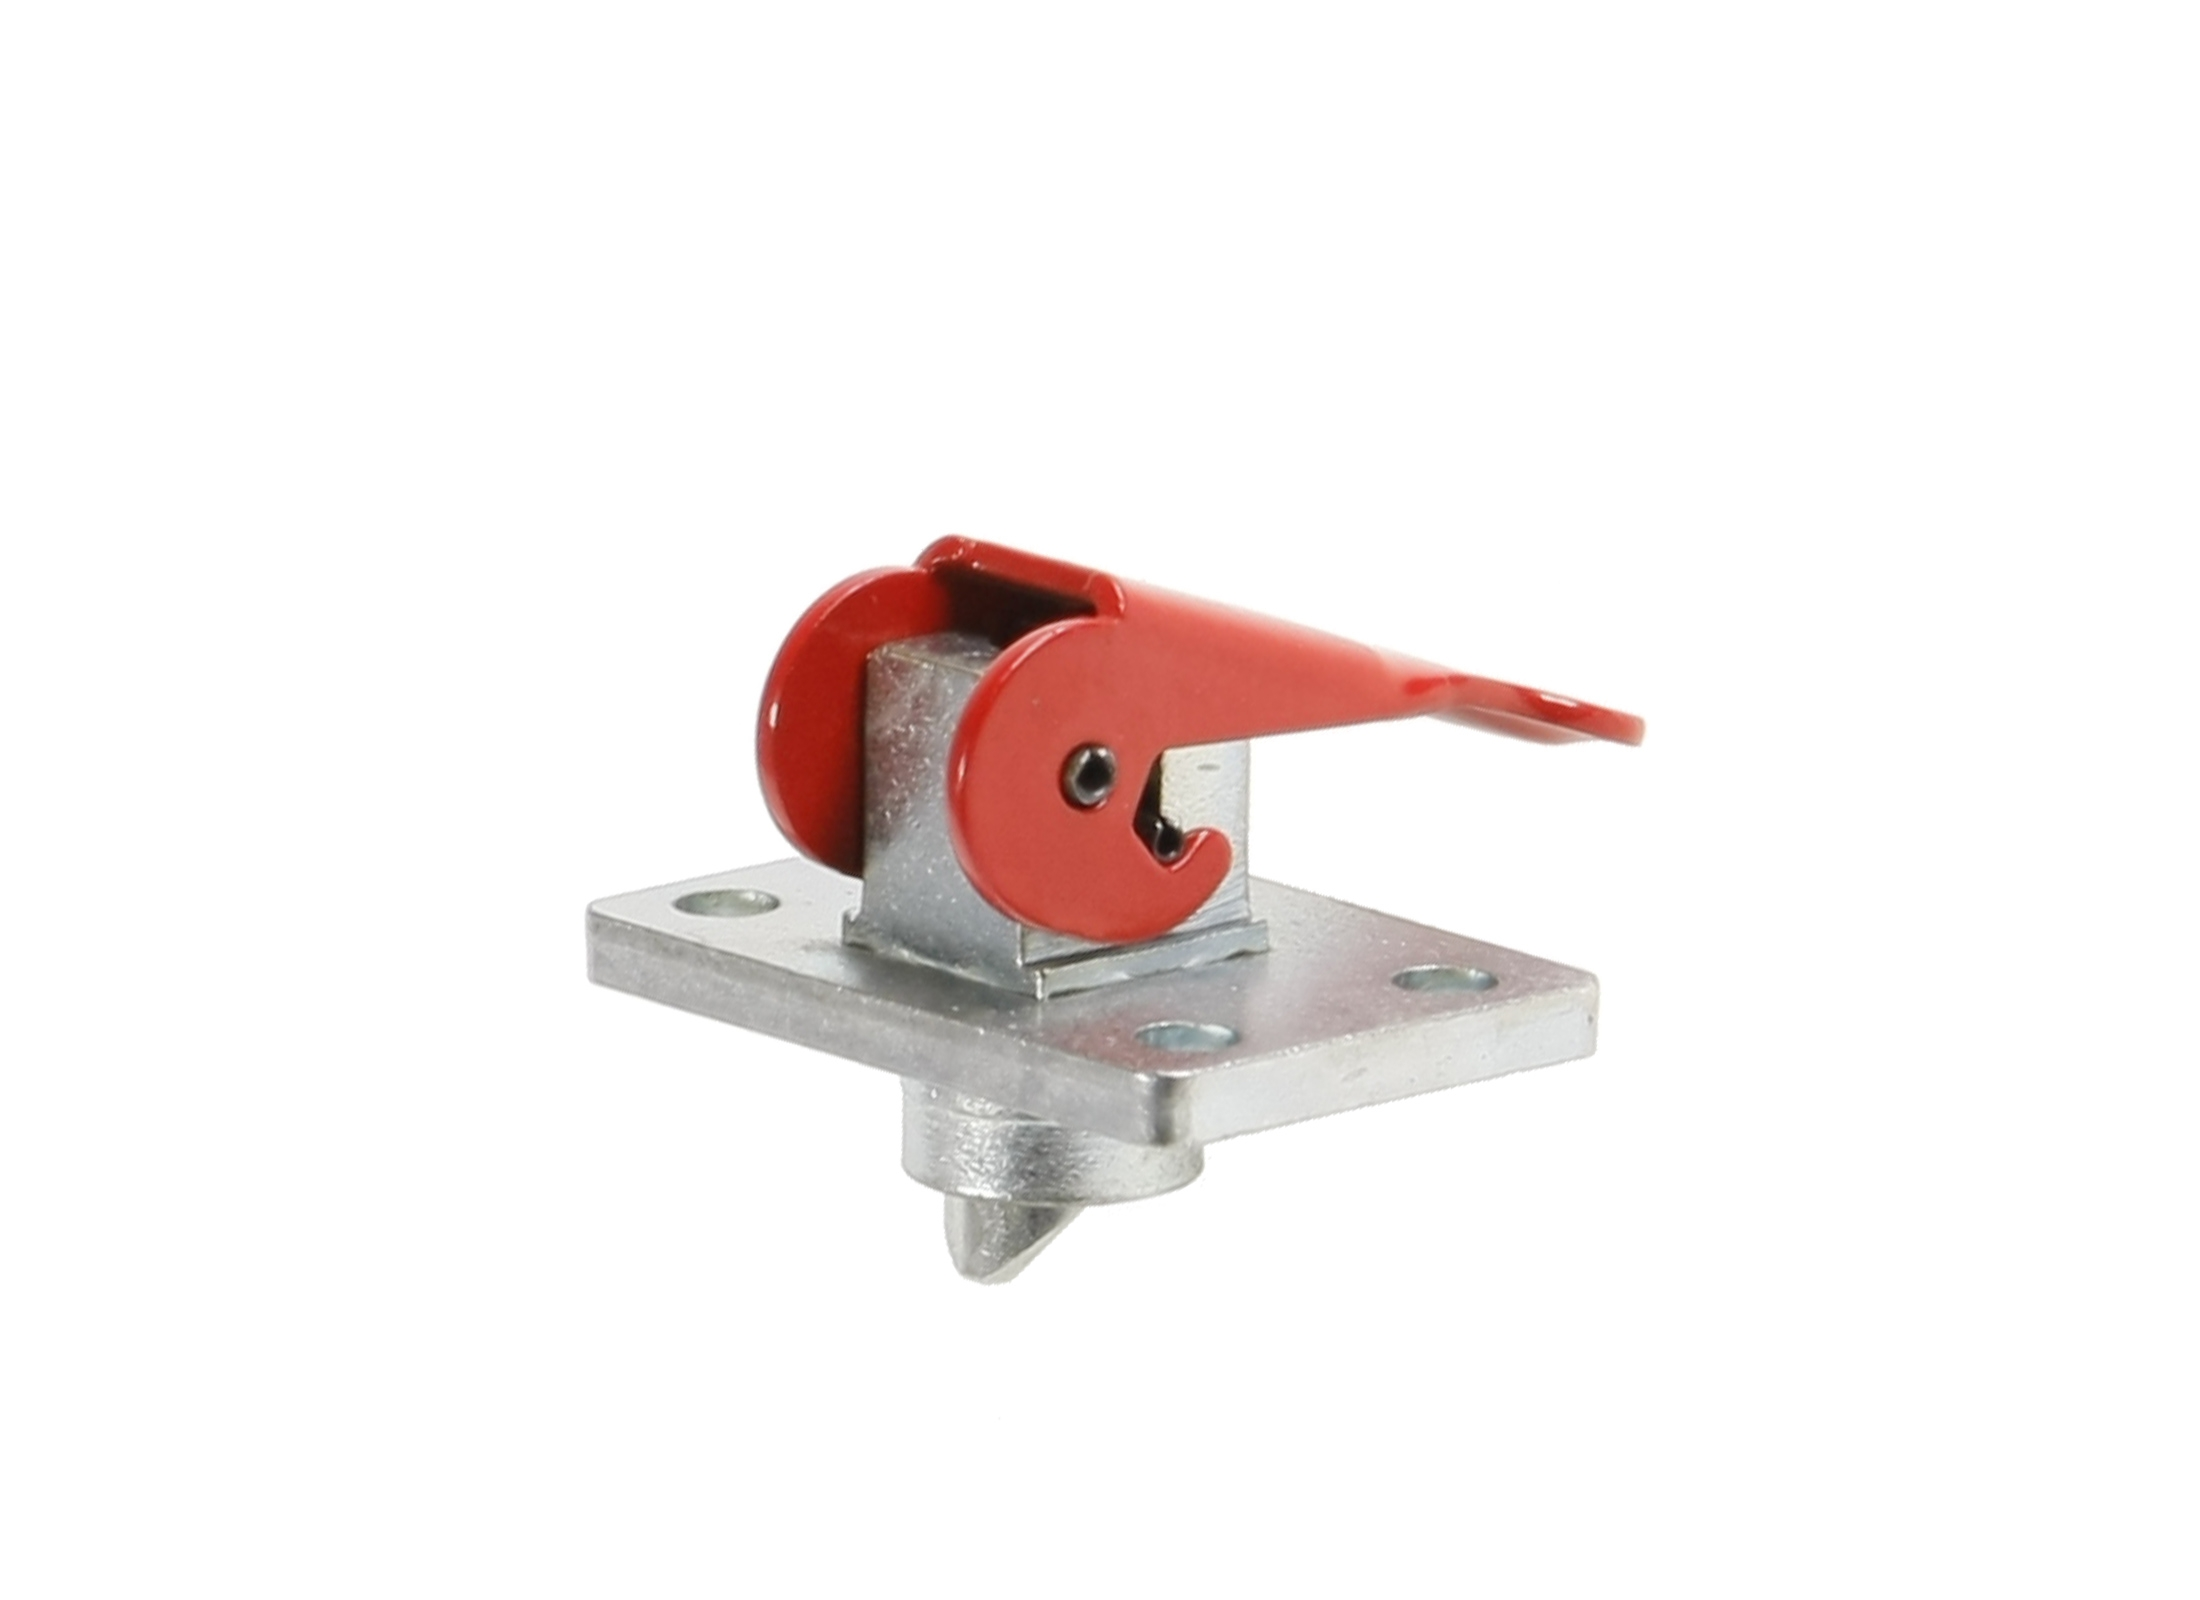 E-VMB Detent Pin 2193, Automatic, Plate 60x40mm, Lever red, Waistband 10mm,  Stud 20mm from Plate, (replaced VMB 2191)